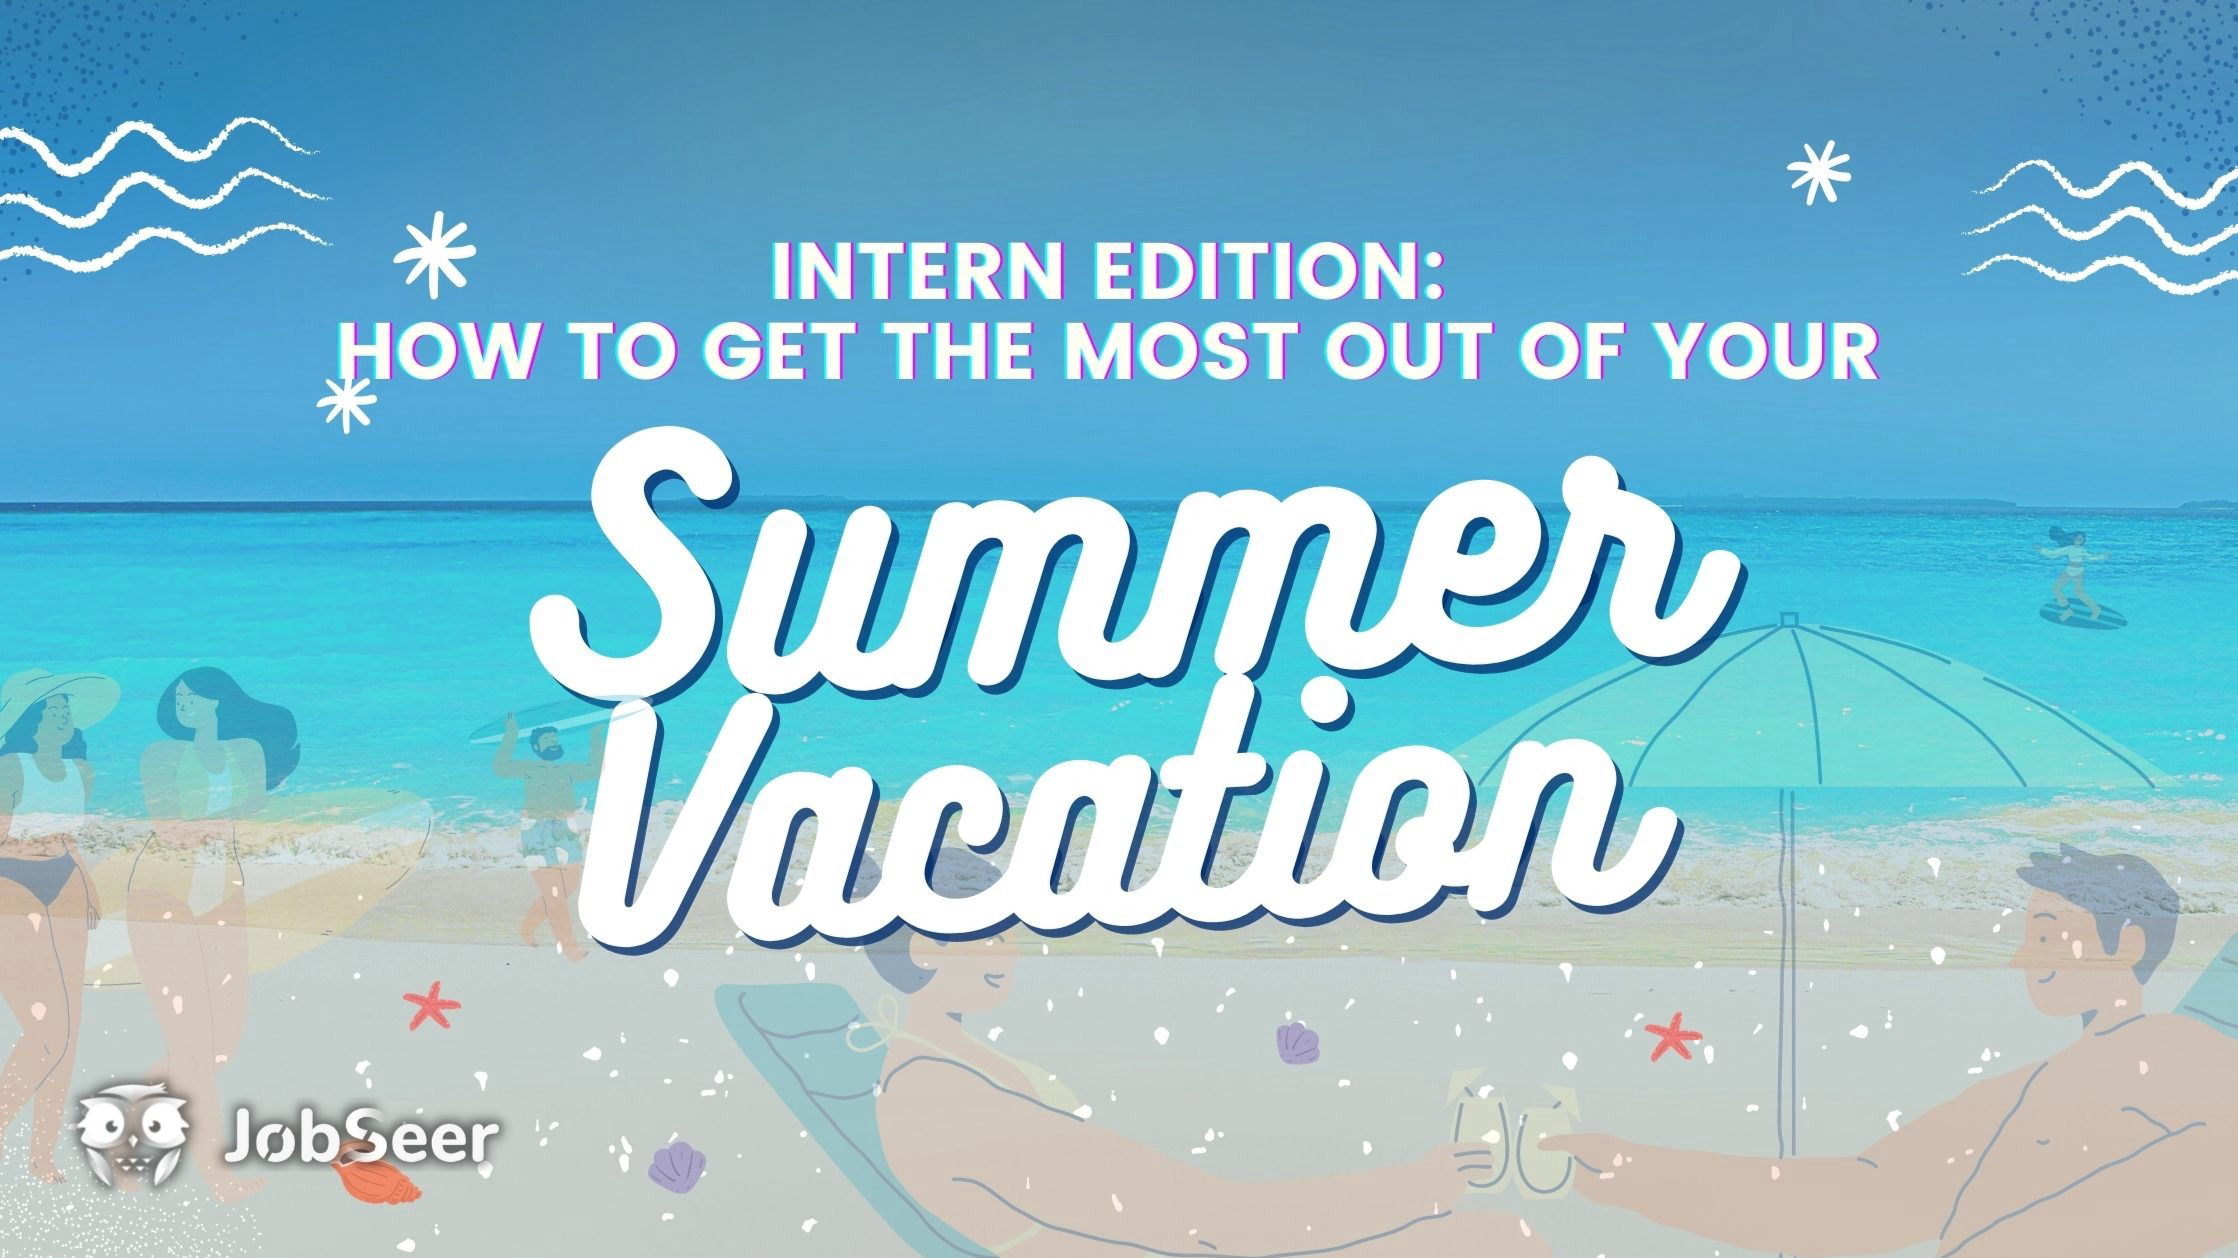 how-to-get-the-most-out-of-your-summer-vacation-as-an-intern